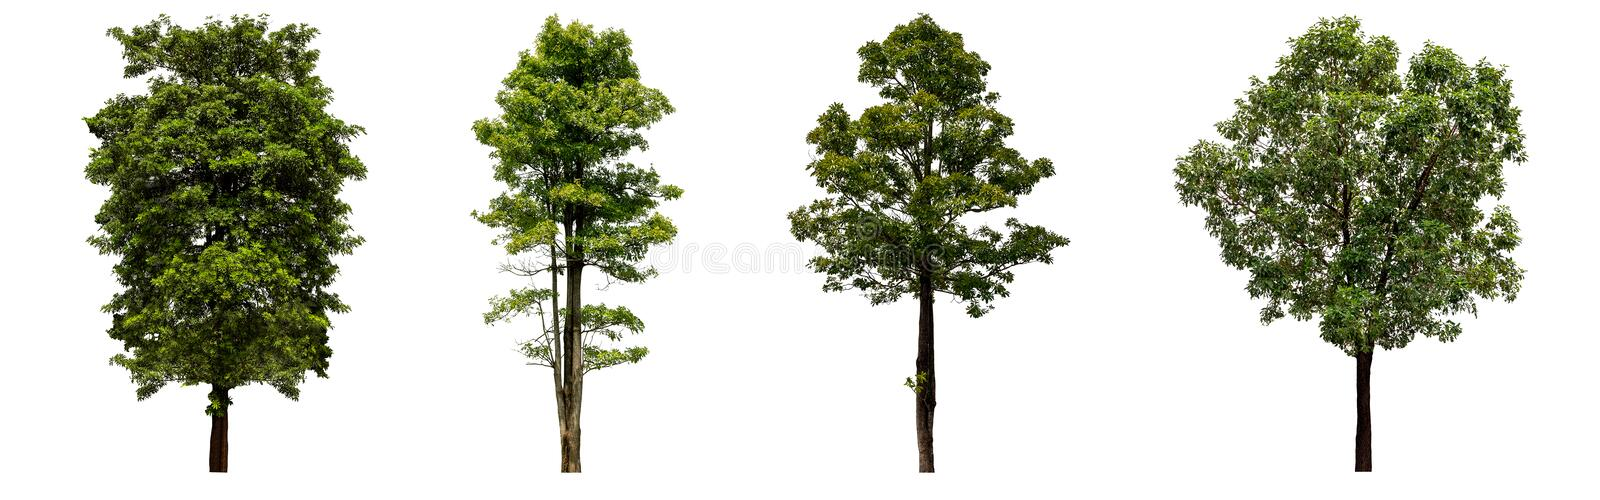 Beautiful fresh green deciduous tree isolated on pure white background for graphic, The collection of trees. With clipping path royalty free stock photography